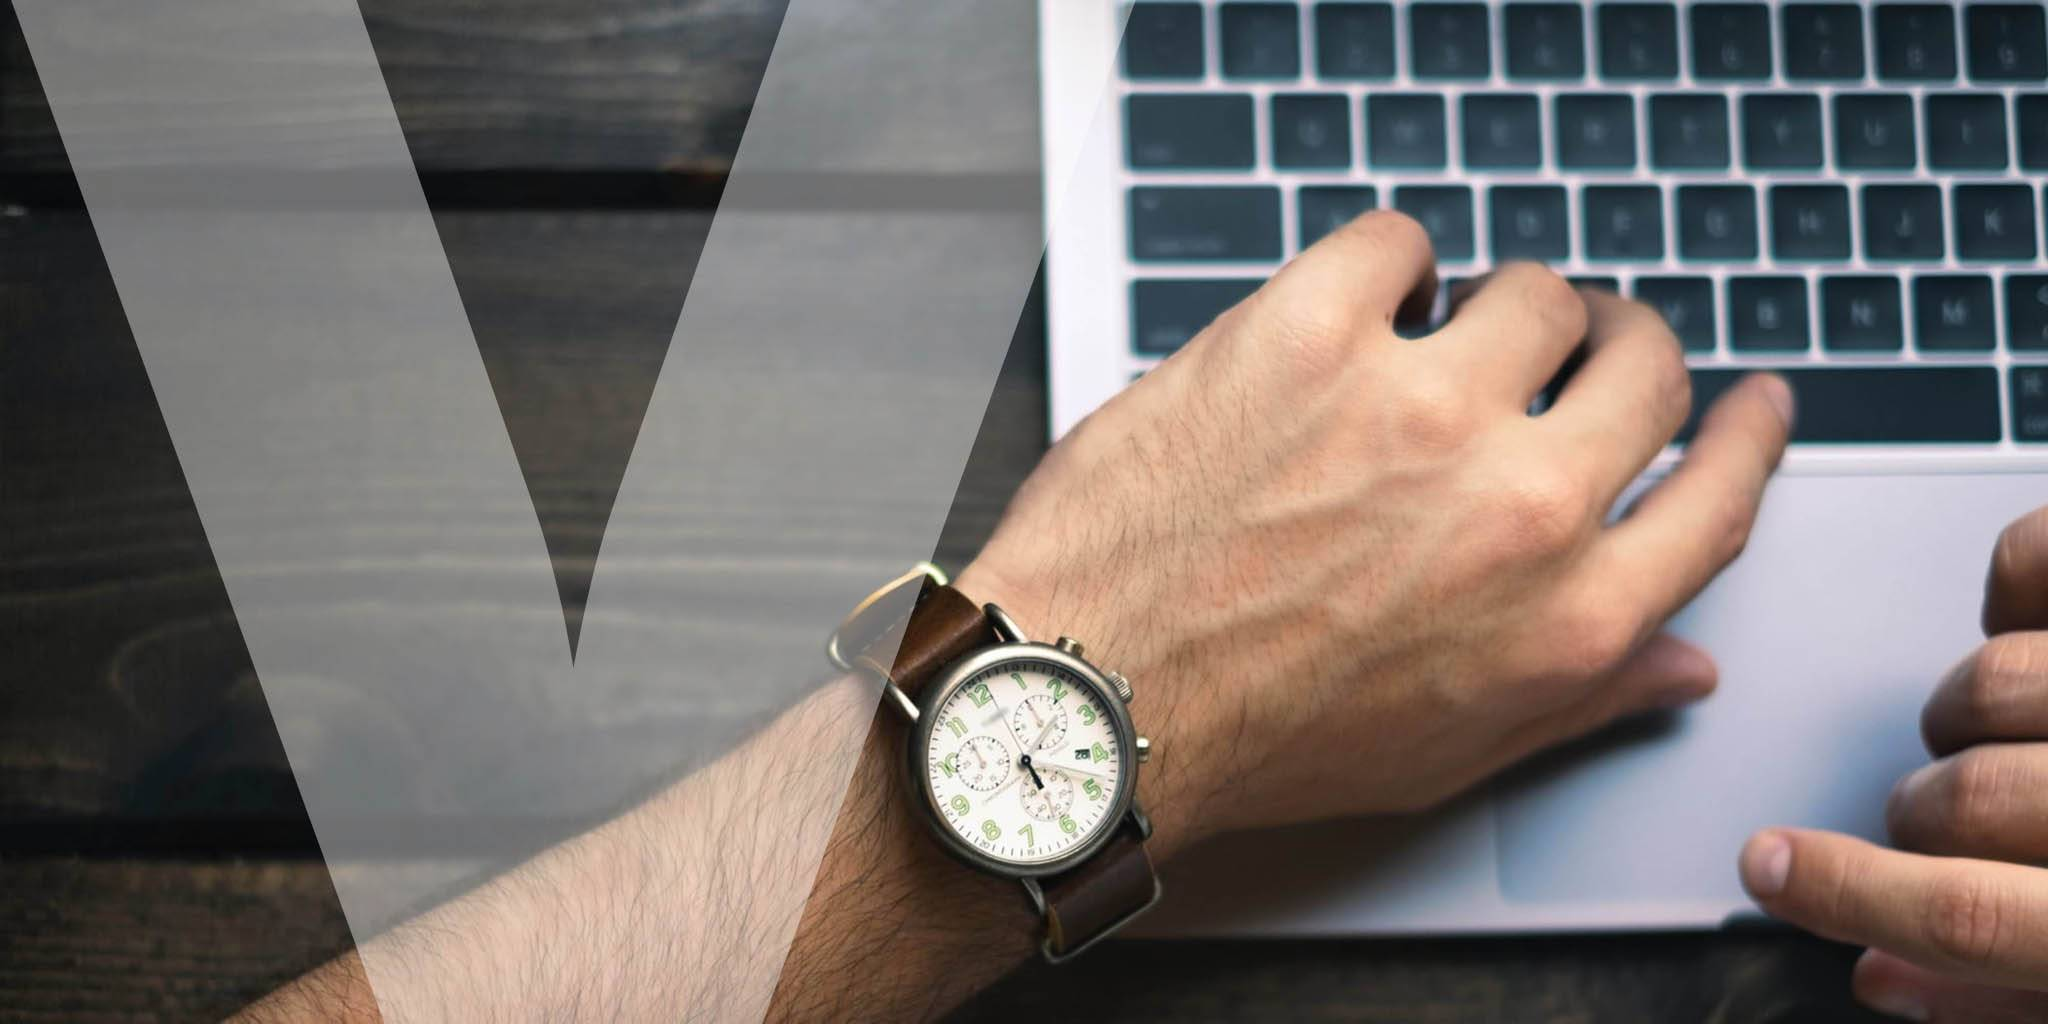 A hand with a wrist watch resting on a laptop